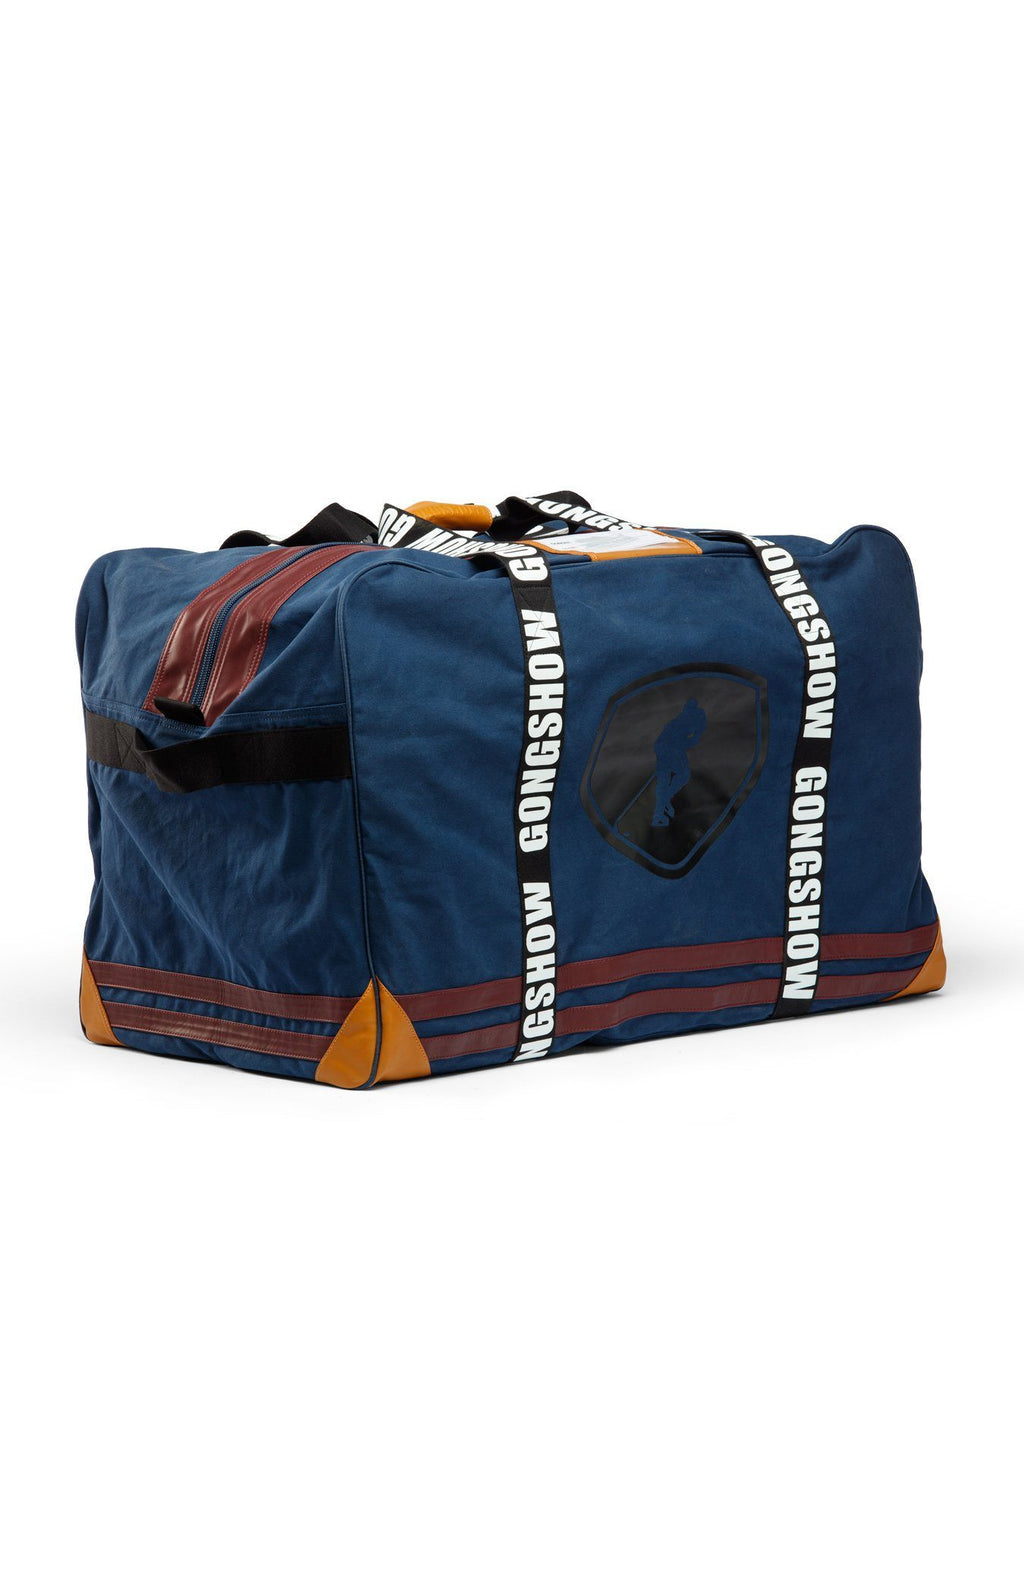 Retro Hockey Bag